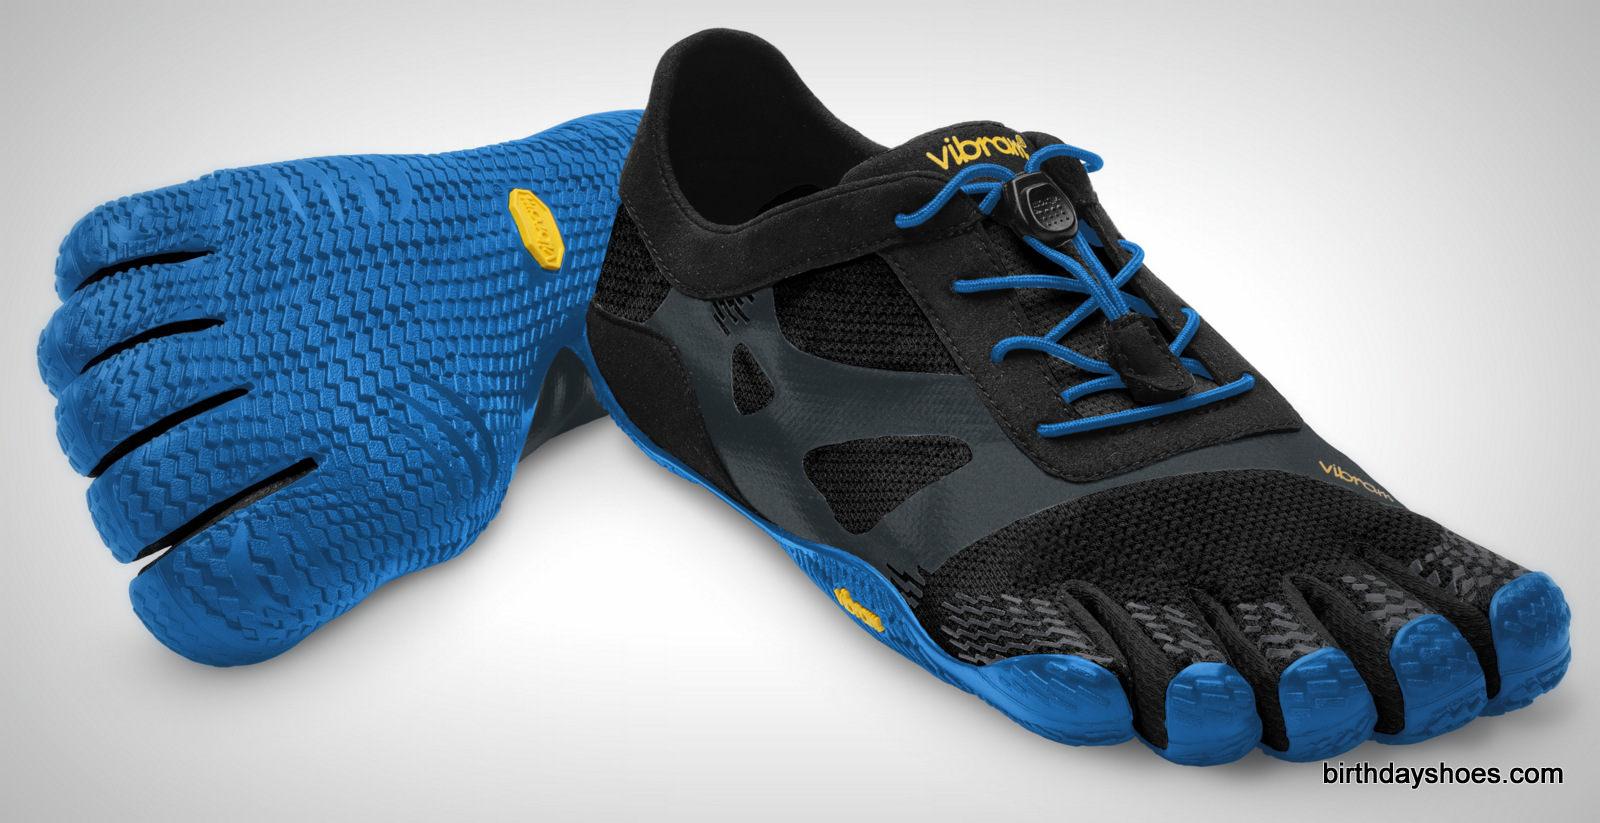 The KSO EVO FiveFingers seen in a men's blue and black colorway.